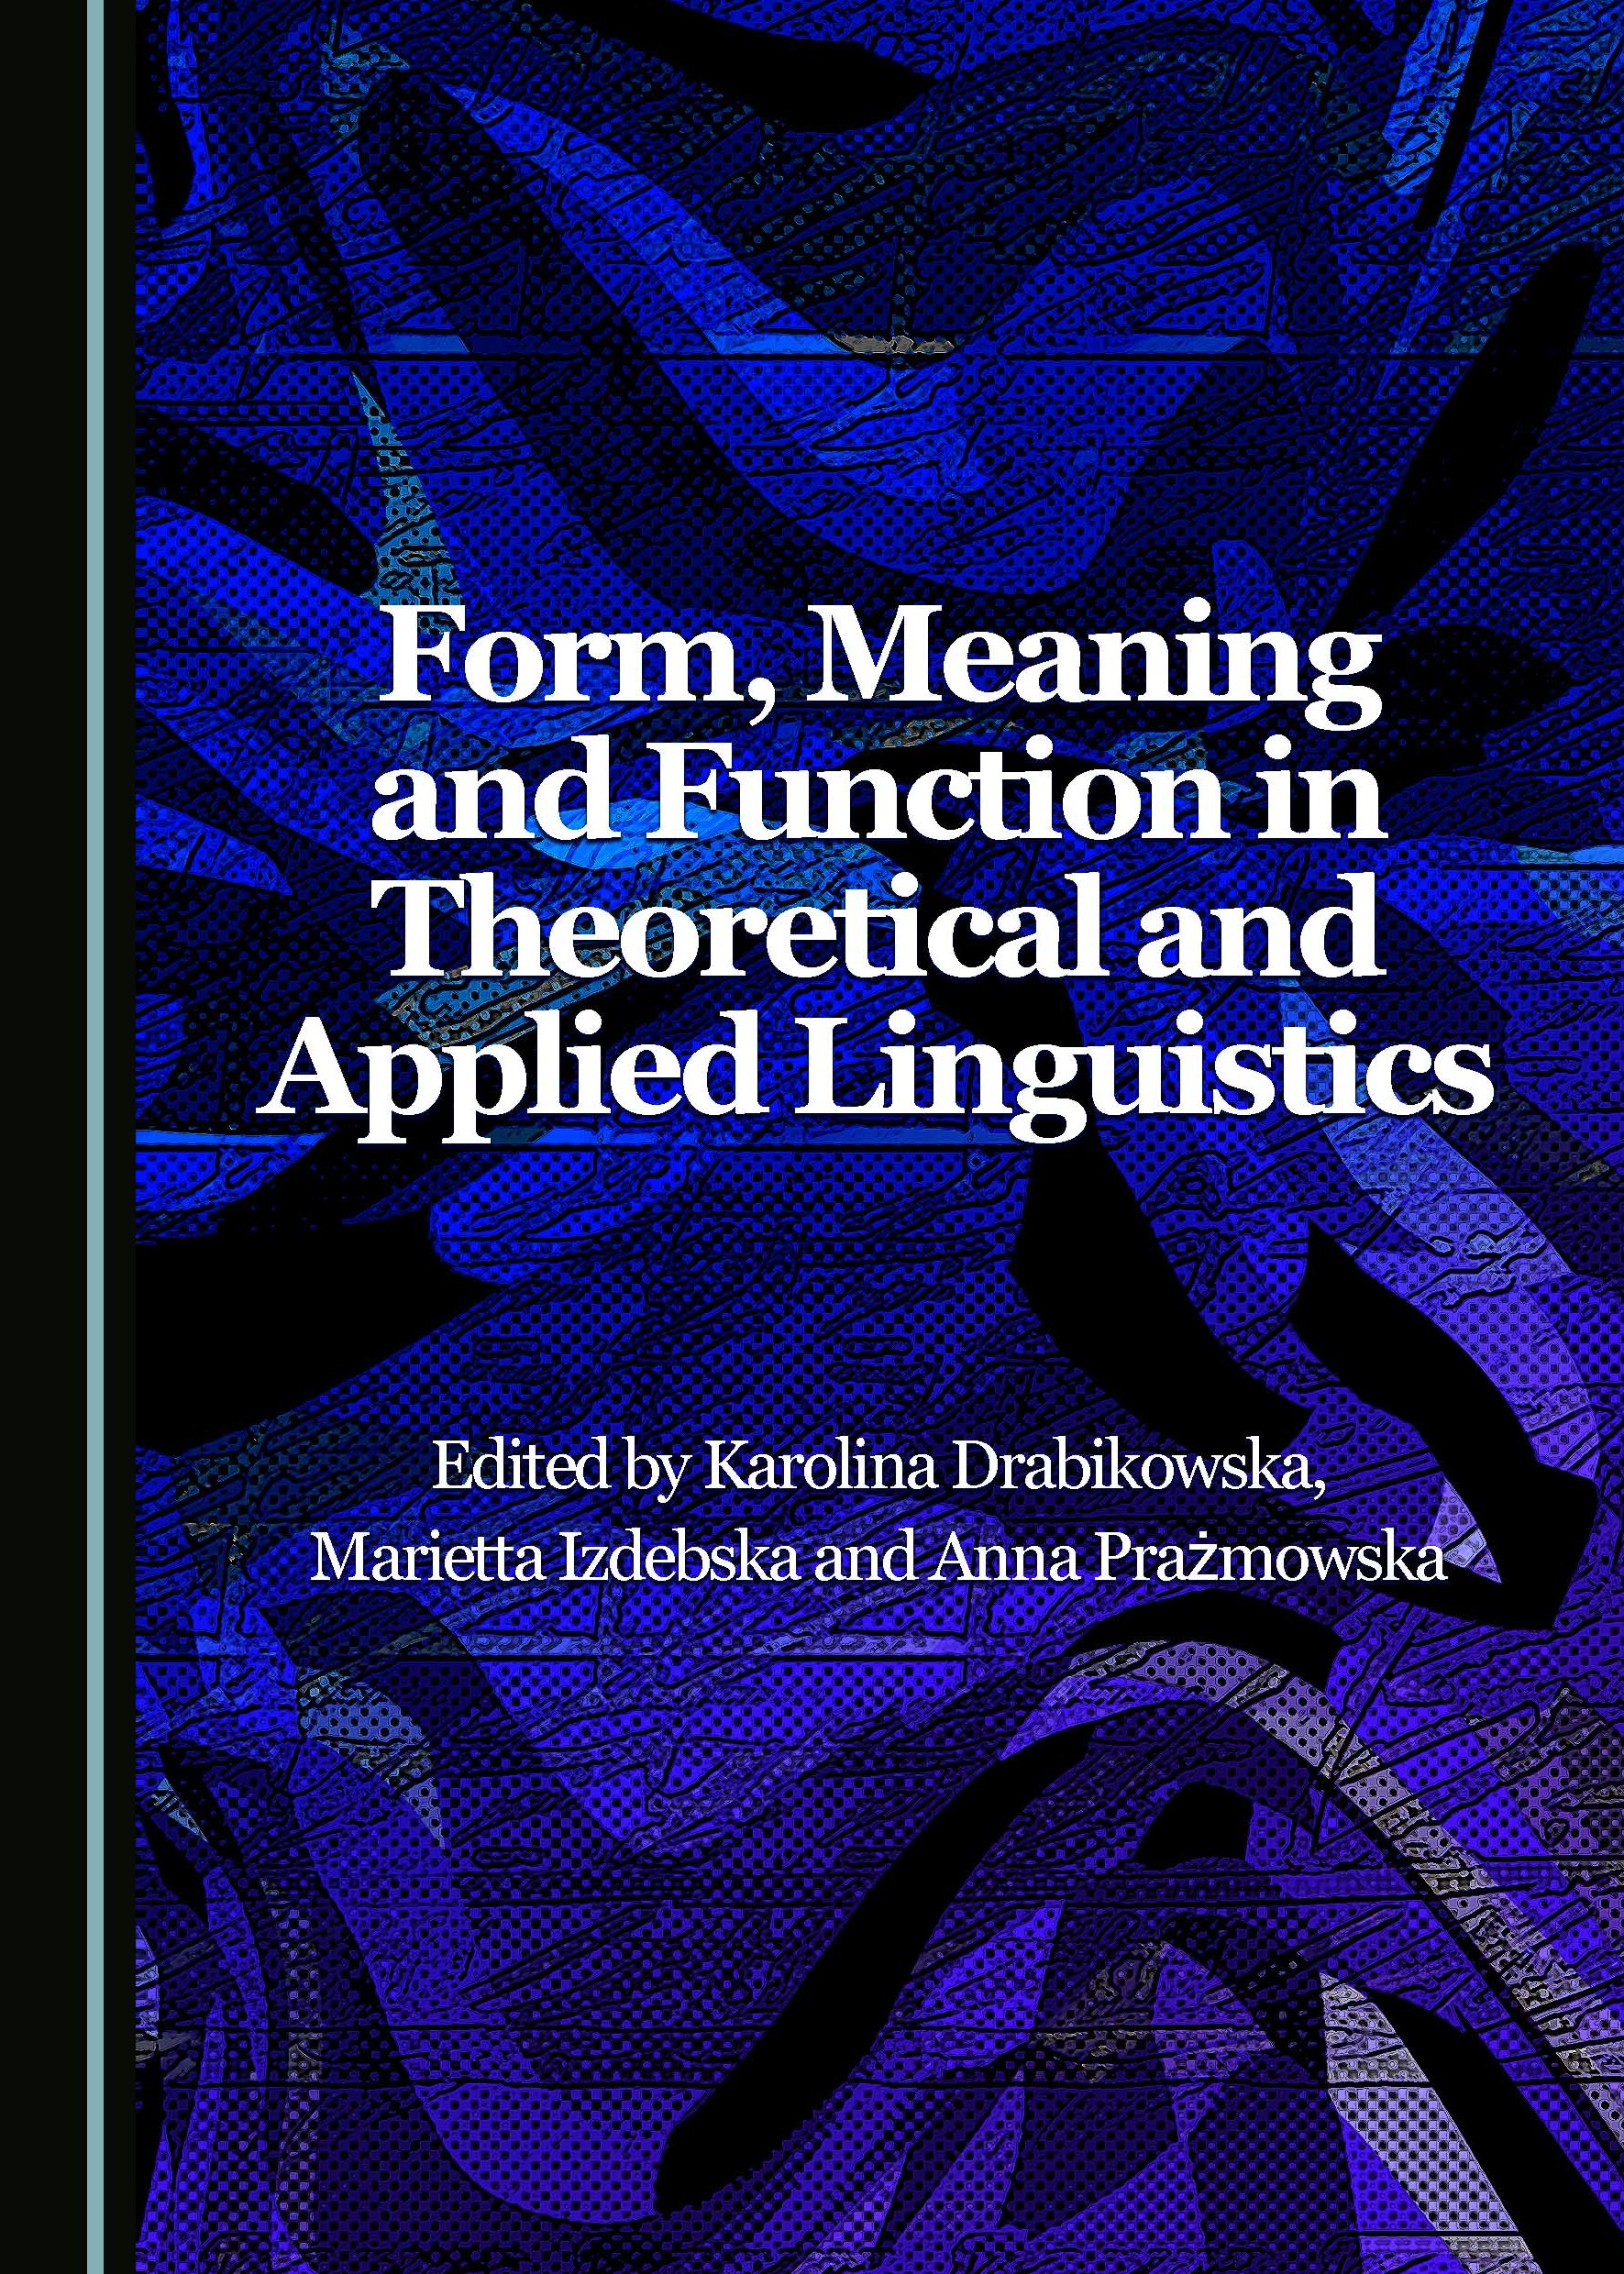 Form, Meaning and Function in Theoretical and Applied Linguistics